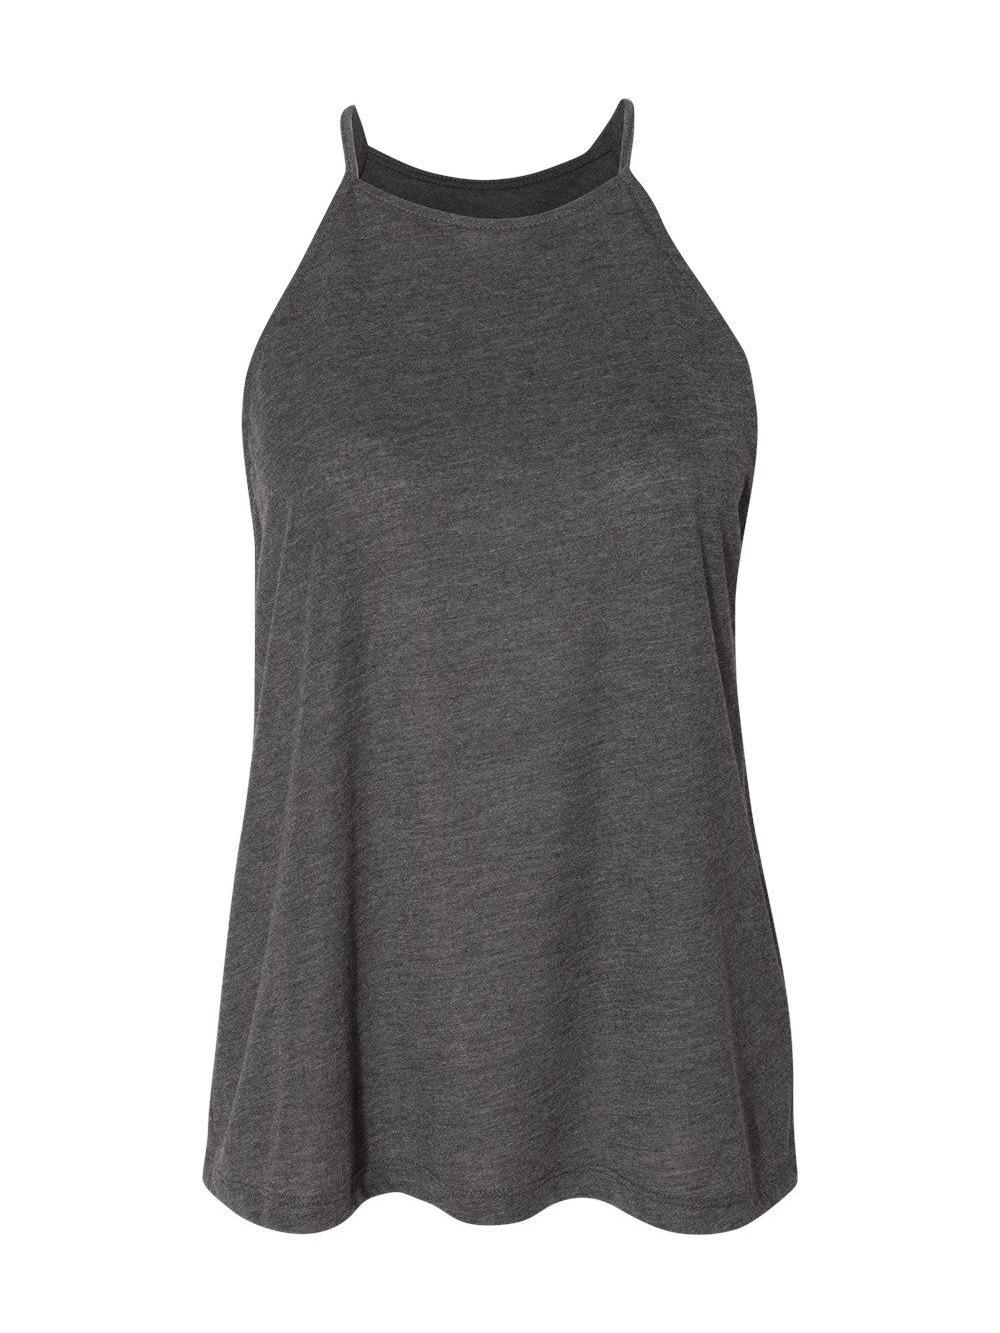 Bella-Canvas-Women-039-s-Flowy-High-Neck-Tank-8809 thumbnail 6